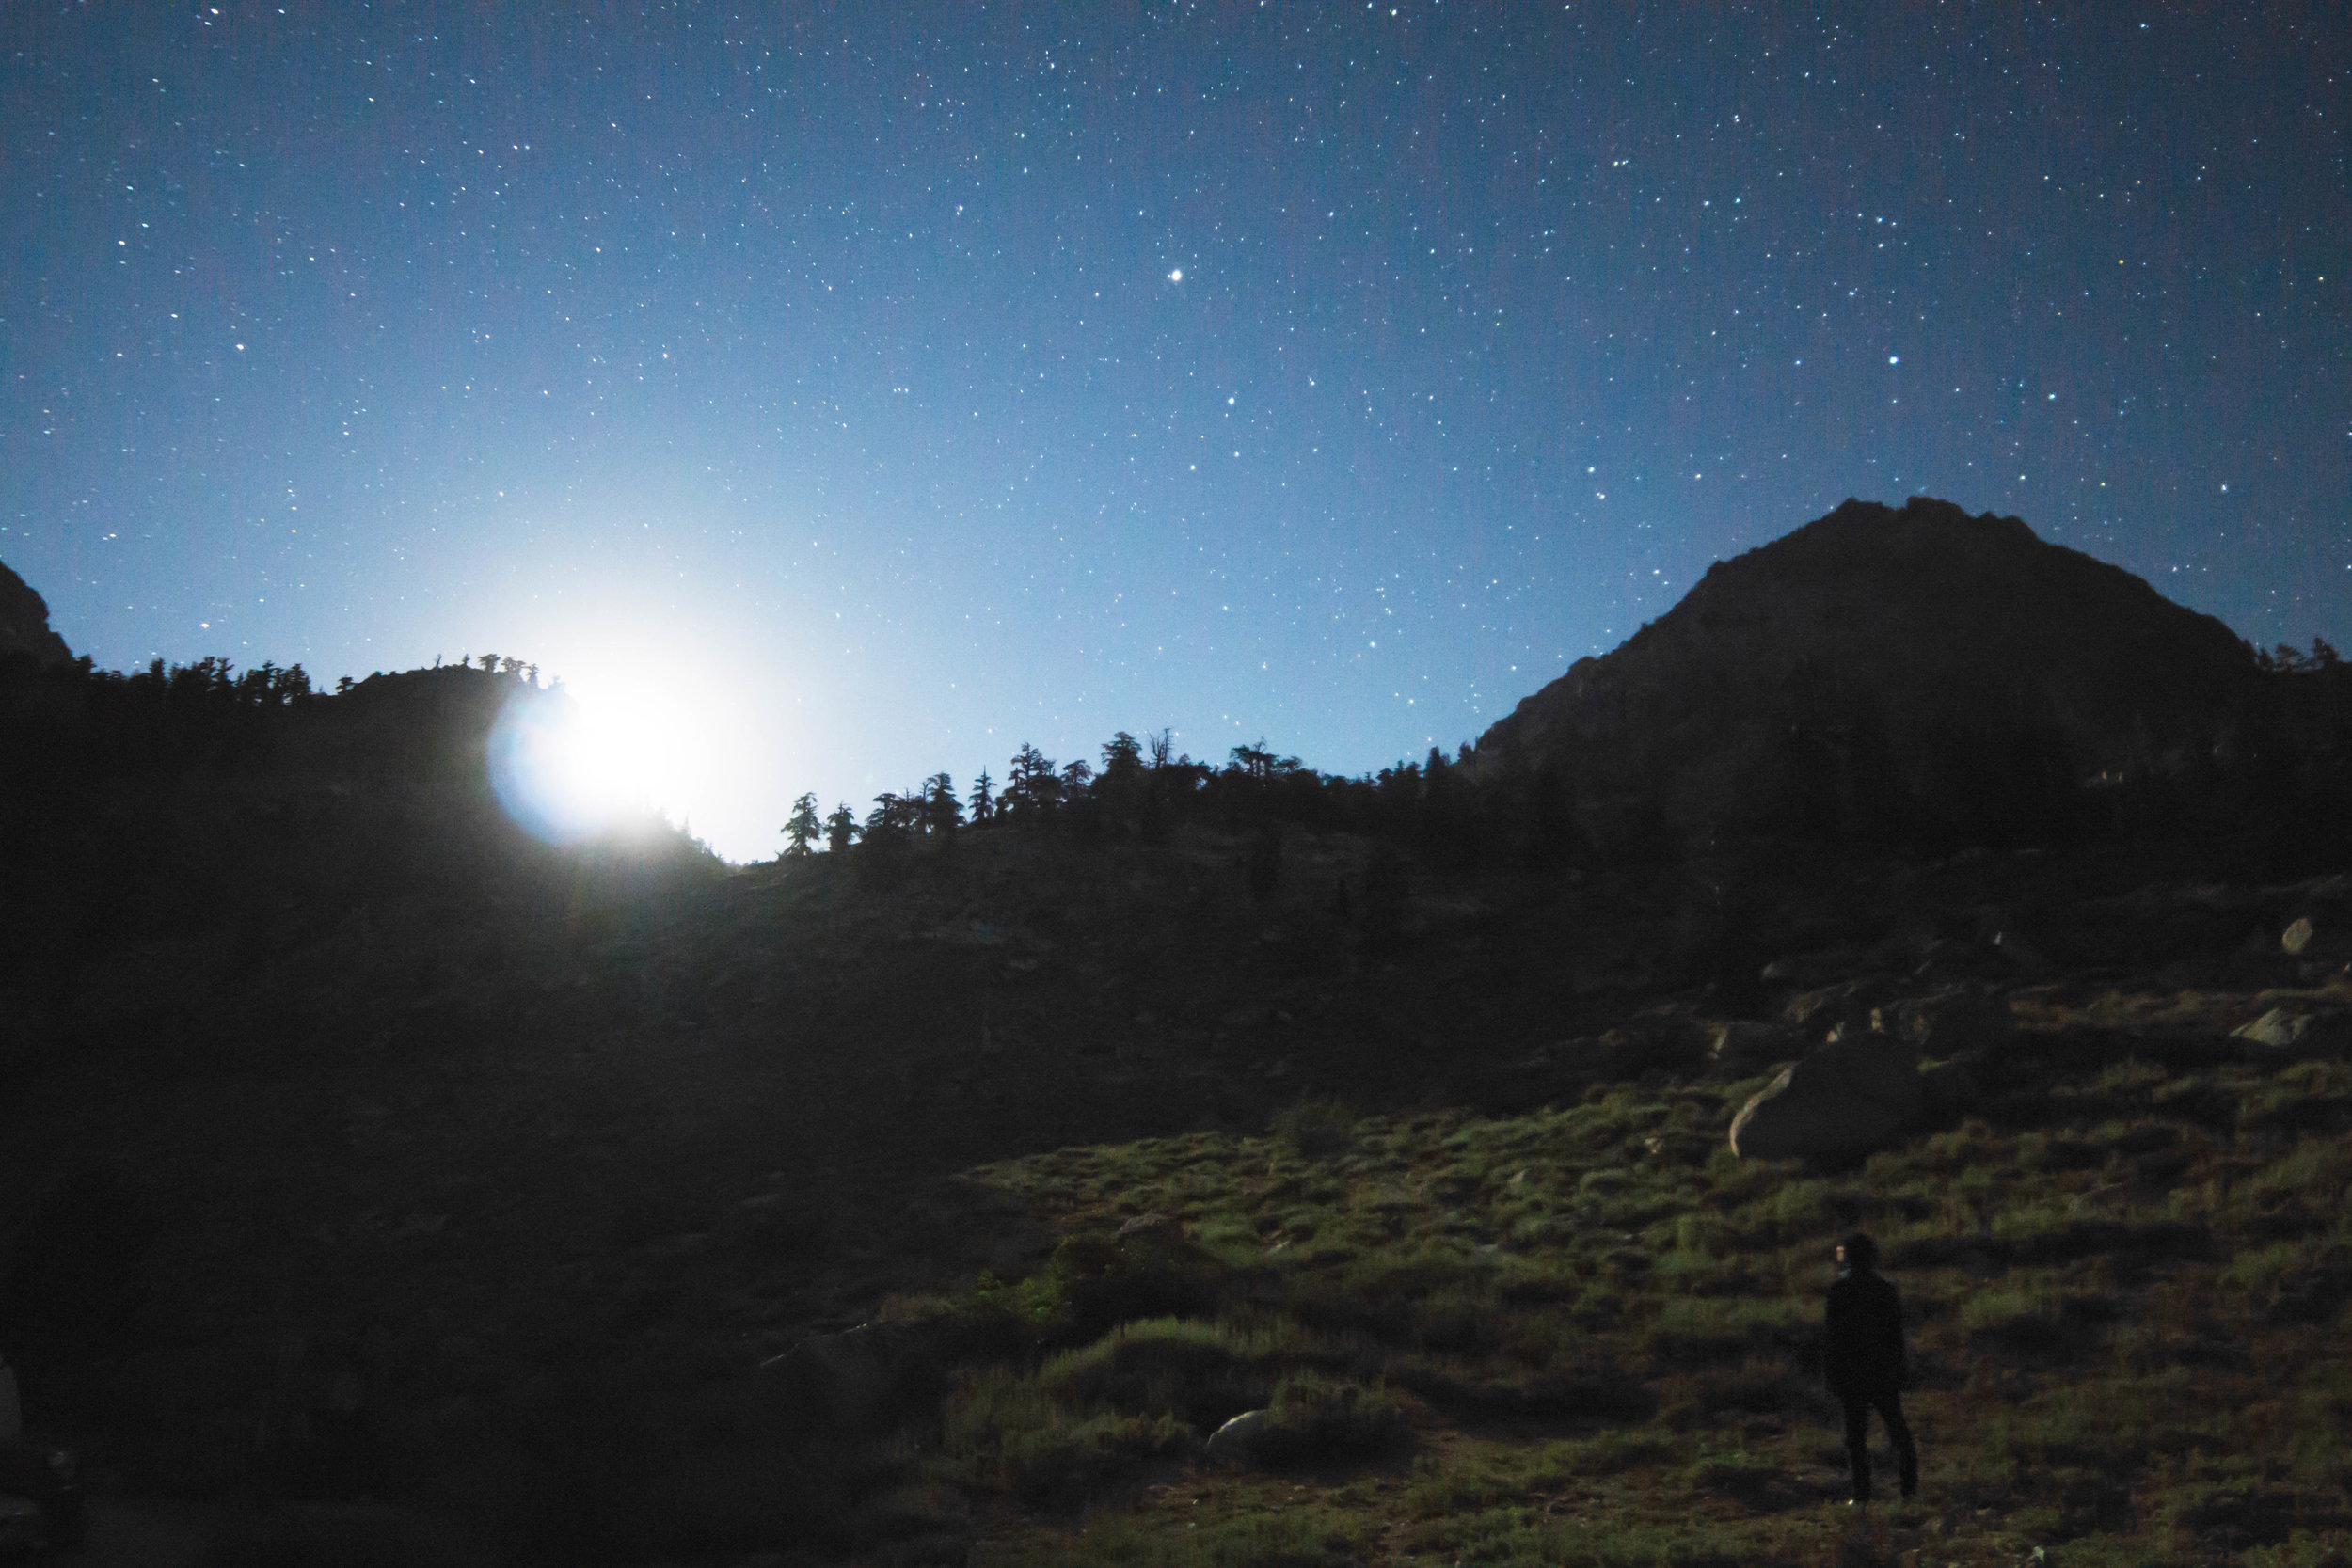 A stargazing favorite of ours is watching the moon rise. As it crests the horizon, the dark landscape is suddenly illuminated, something only noticeable when away from city lights.